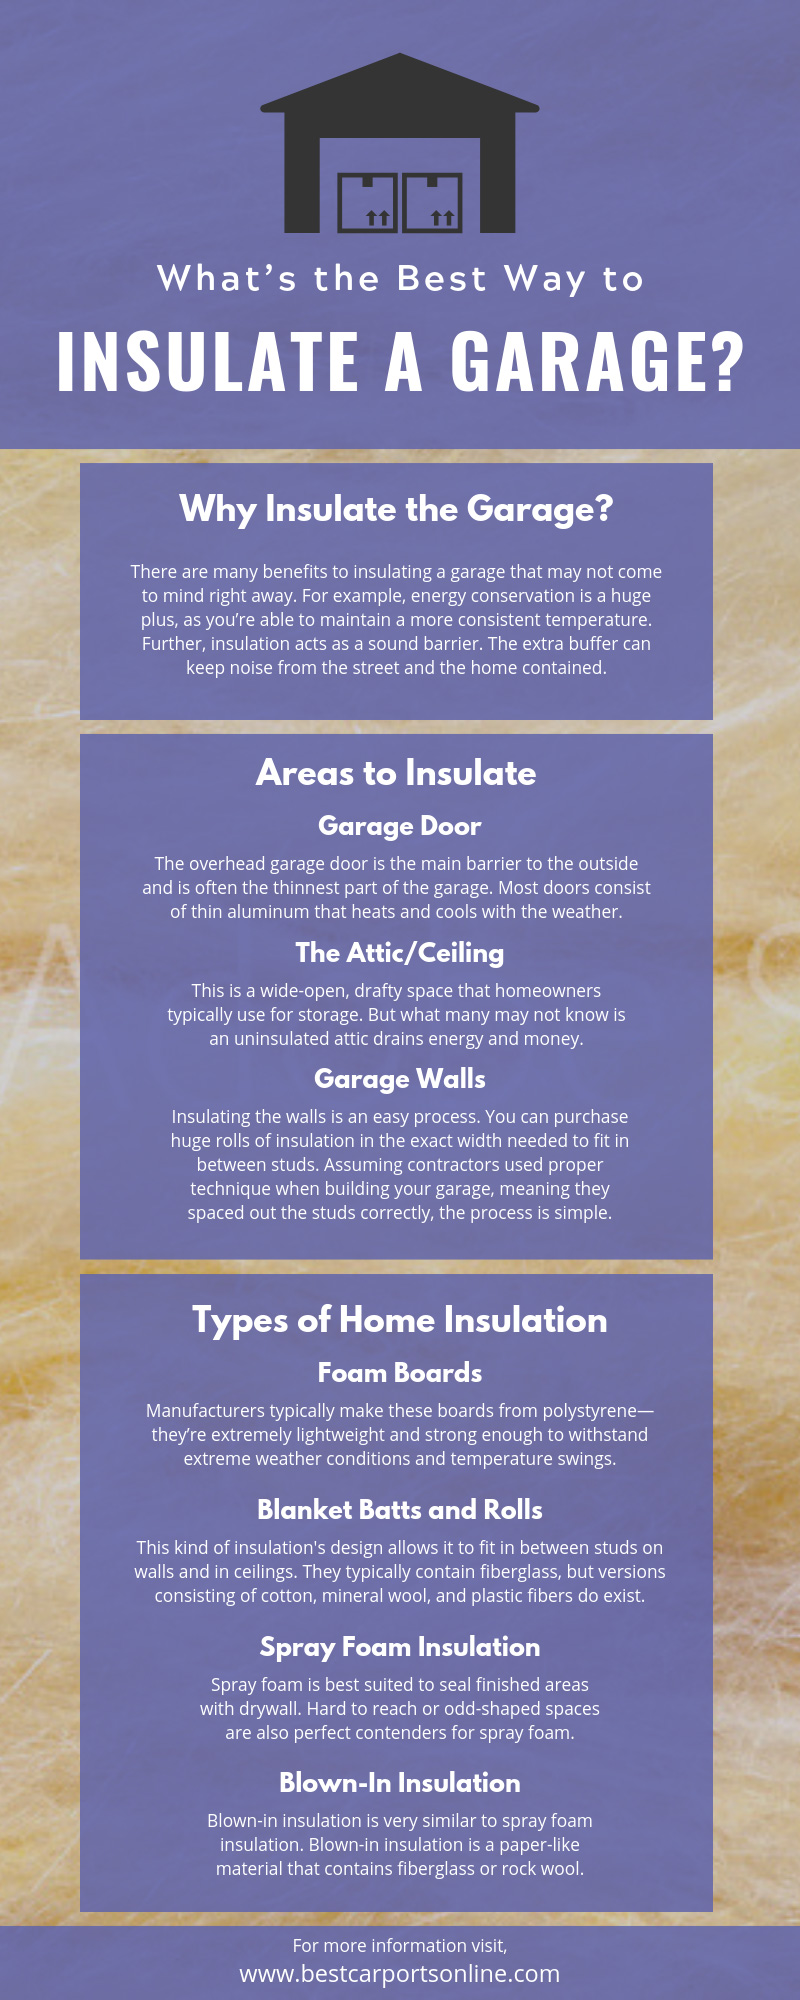 What's the Best Way to Insulate a Garage infographic